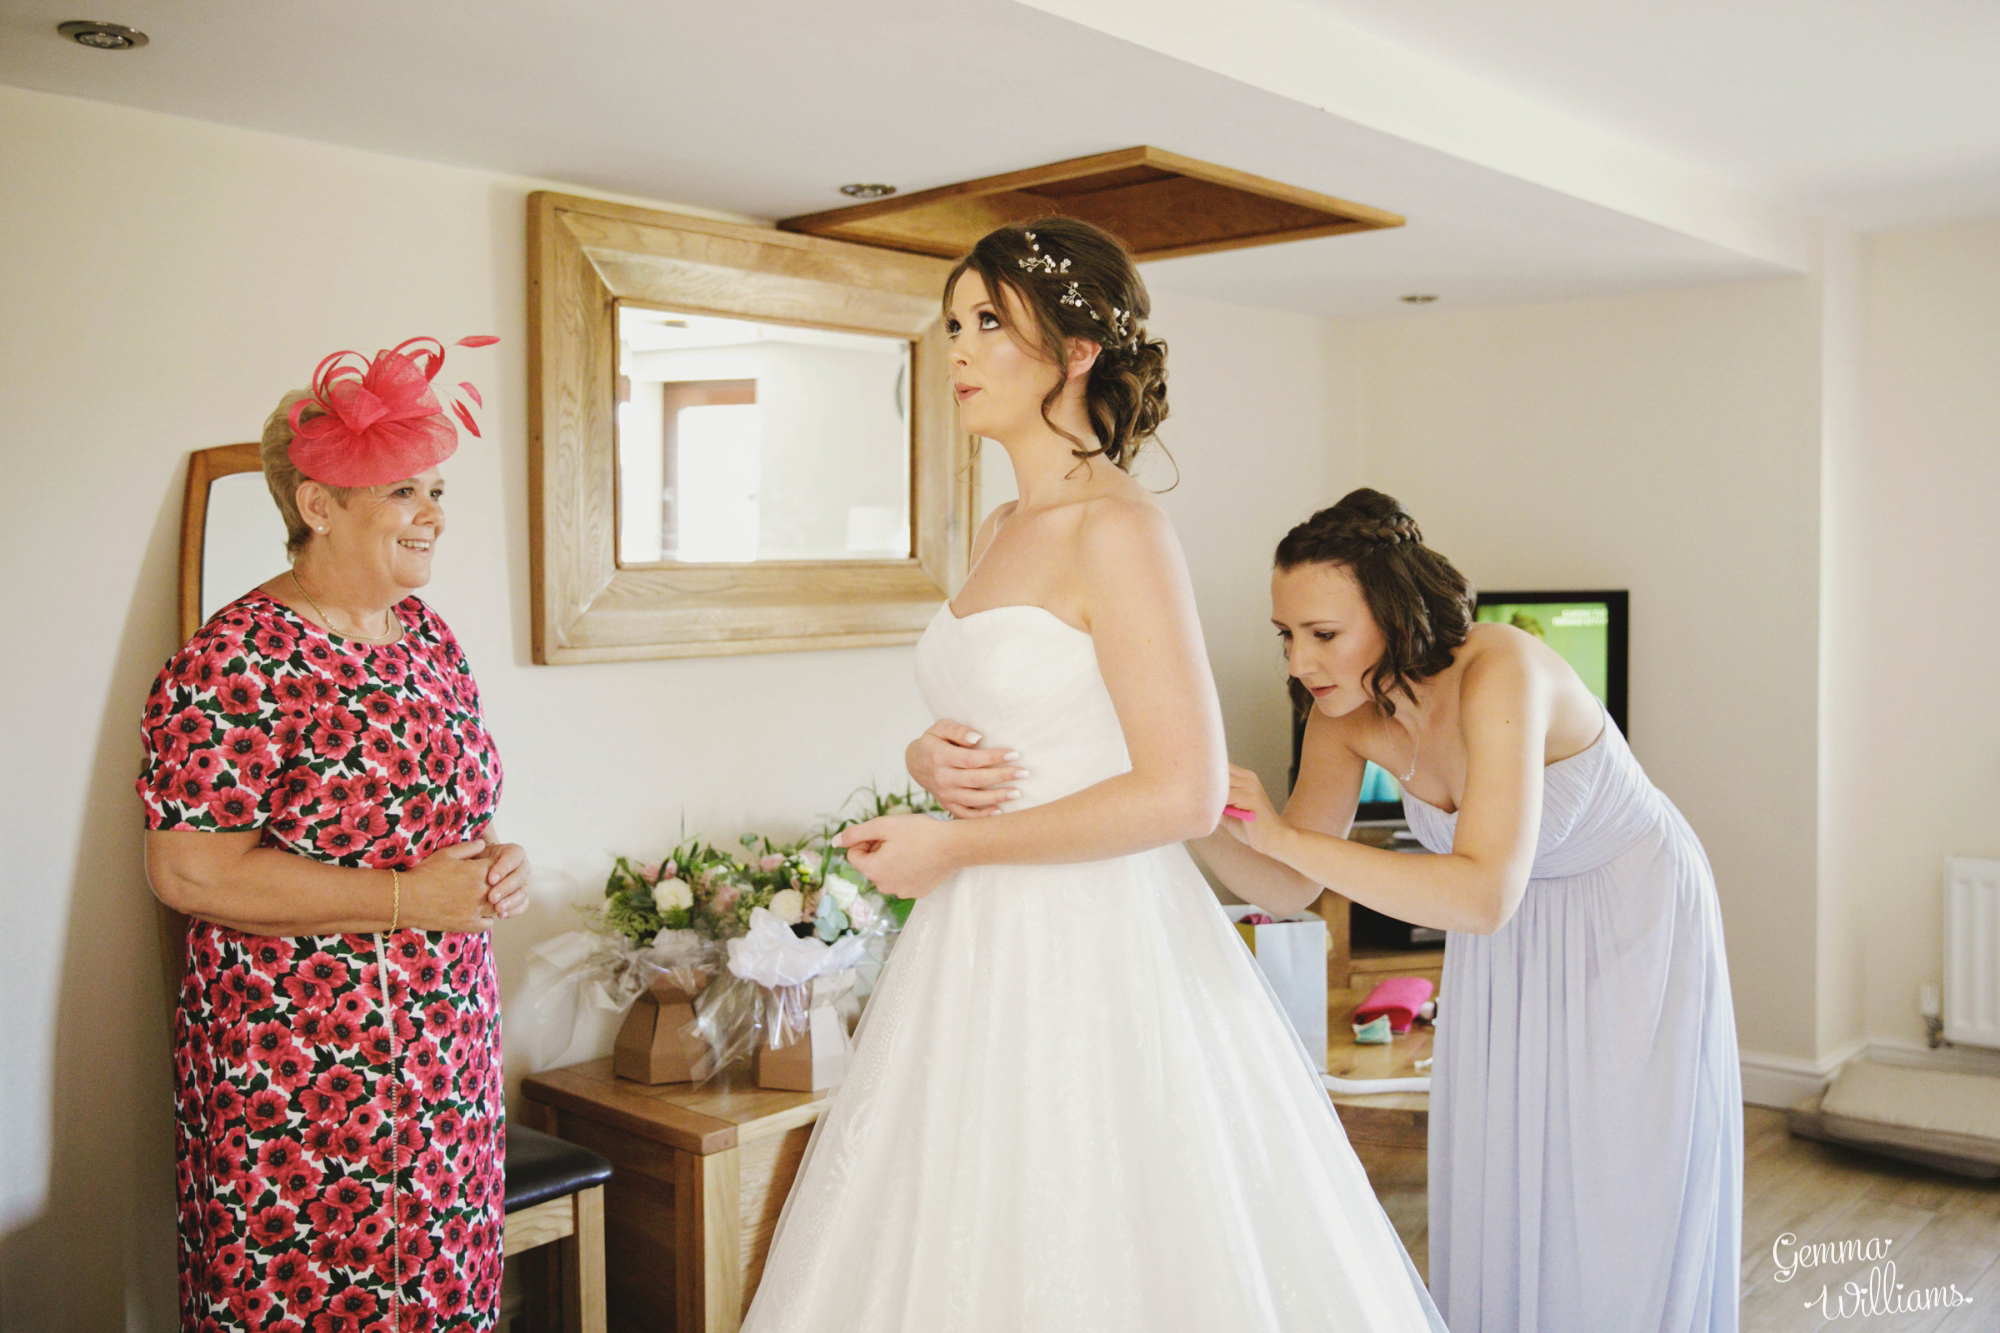 GemmaWilliamsPhotography_Weddings2018_0139.jpg